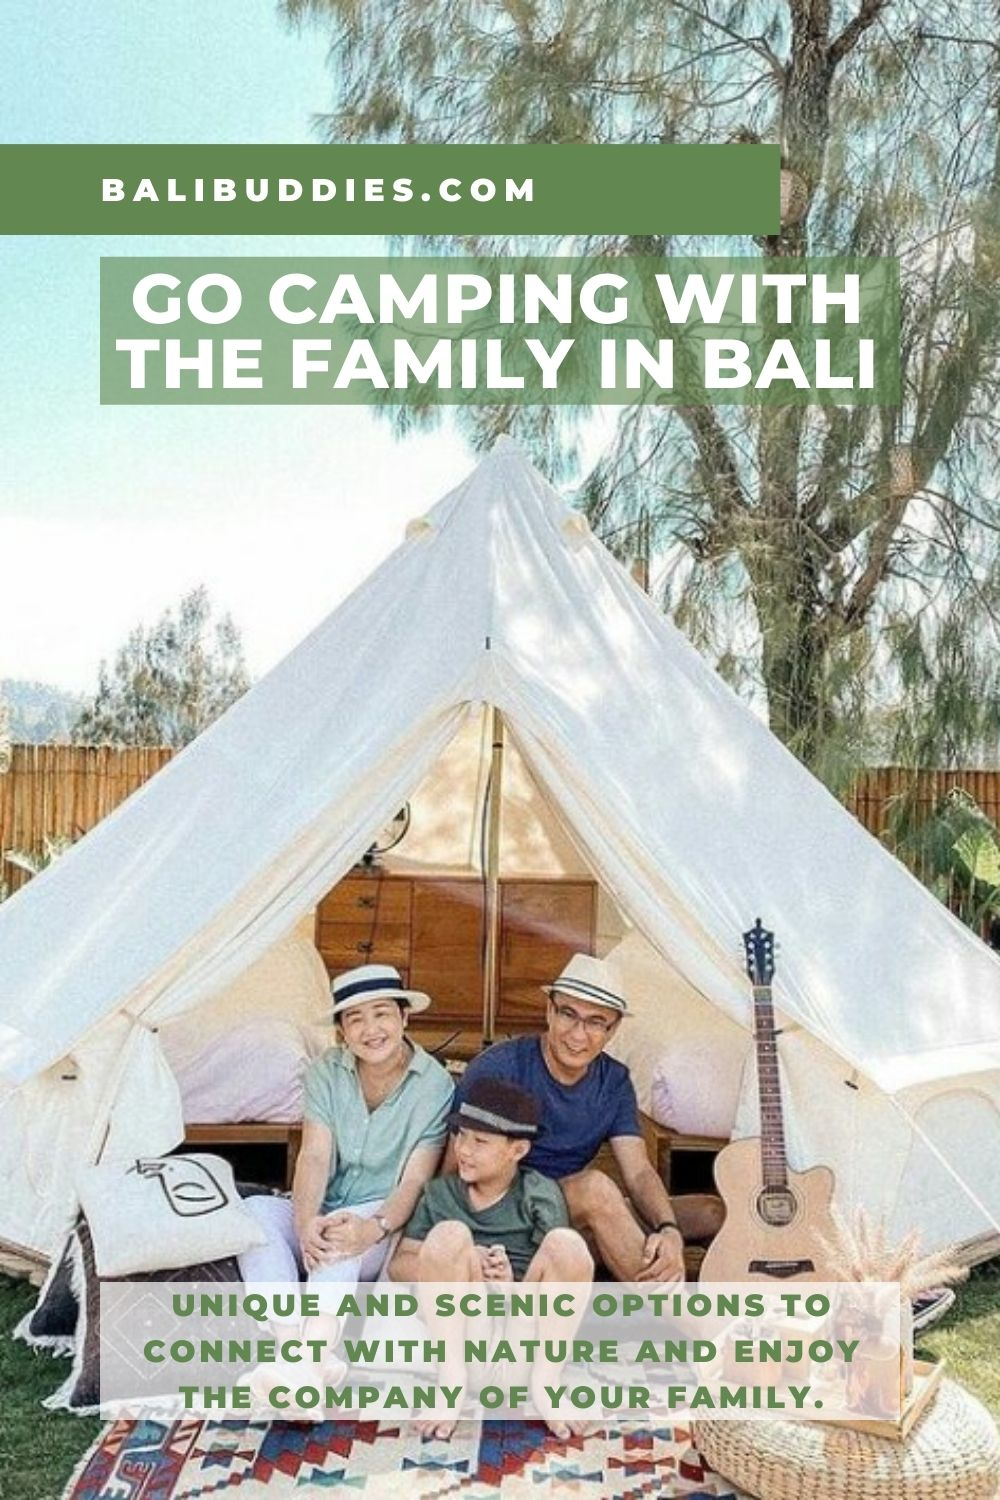 Go camping with the family in Bali